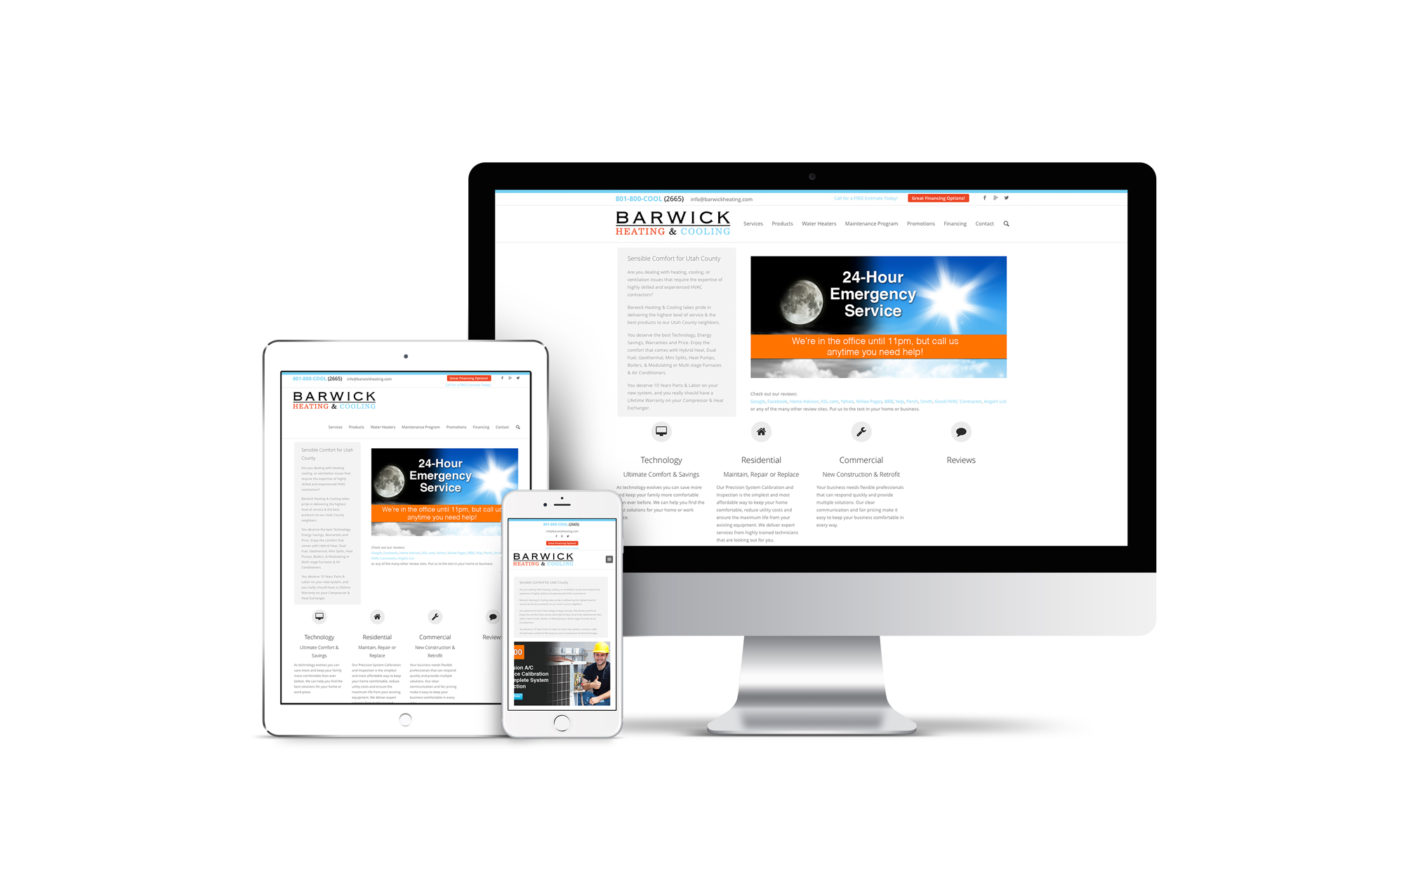 A custom designed website for an HVAC company displayed on multiple screens.